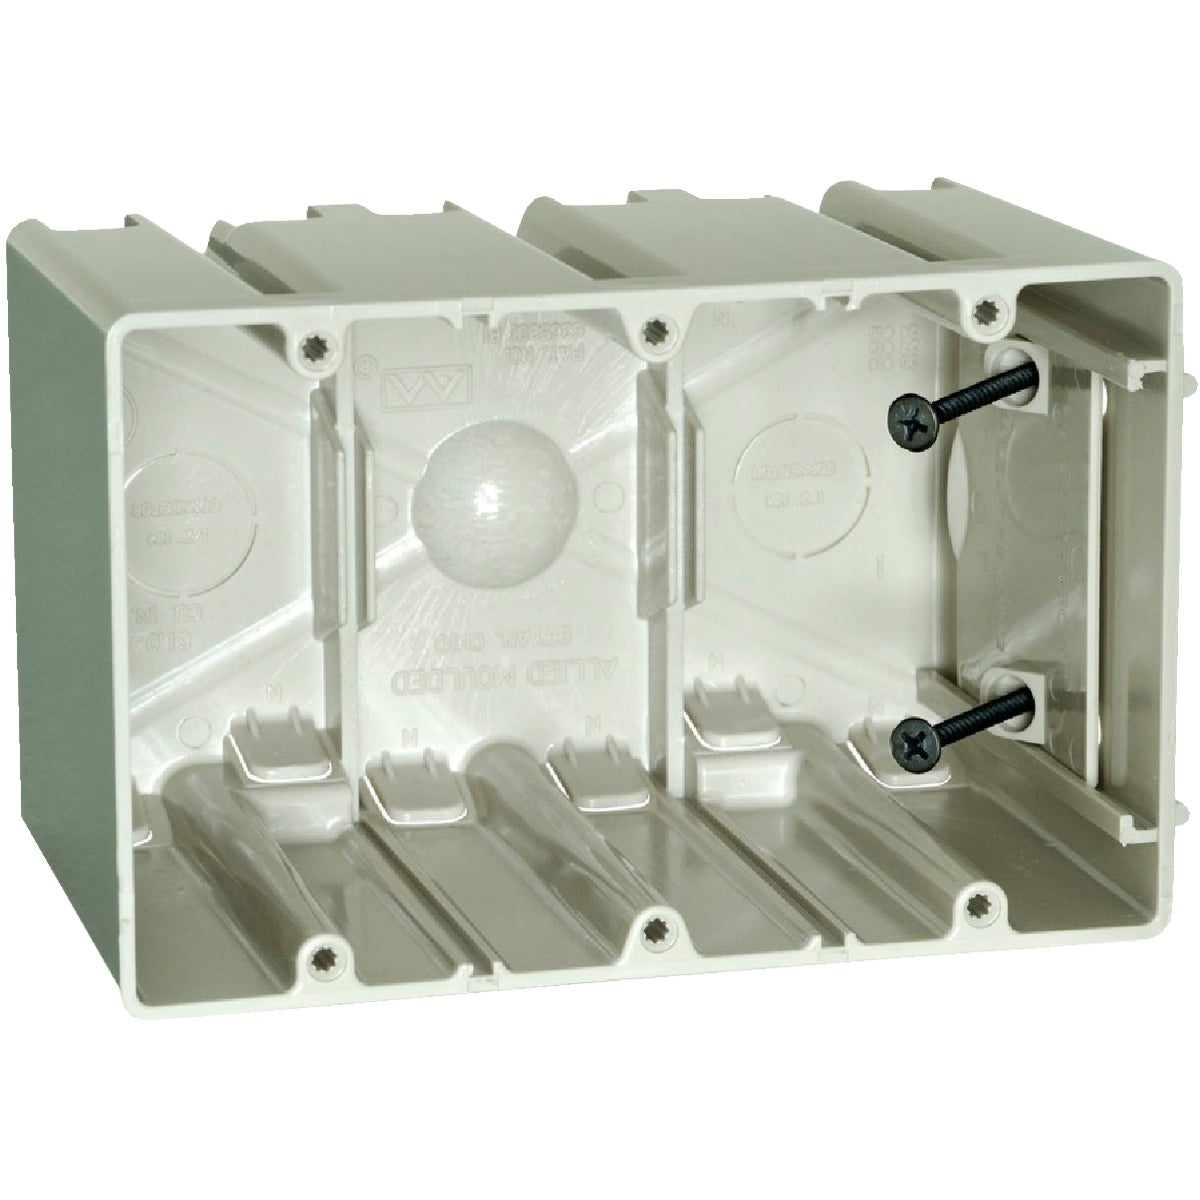 THREE GANG SLIDER BOX - SB-3 by Allied Moulded